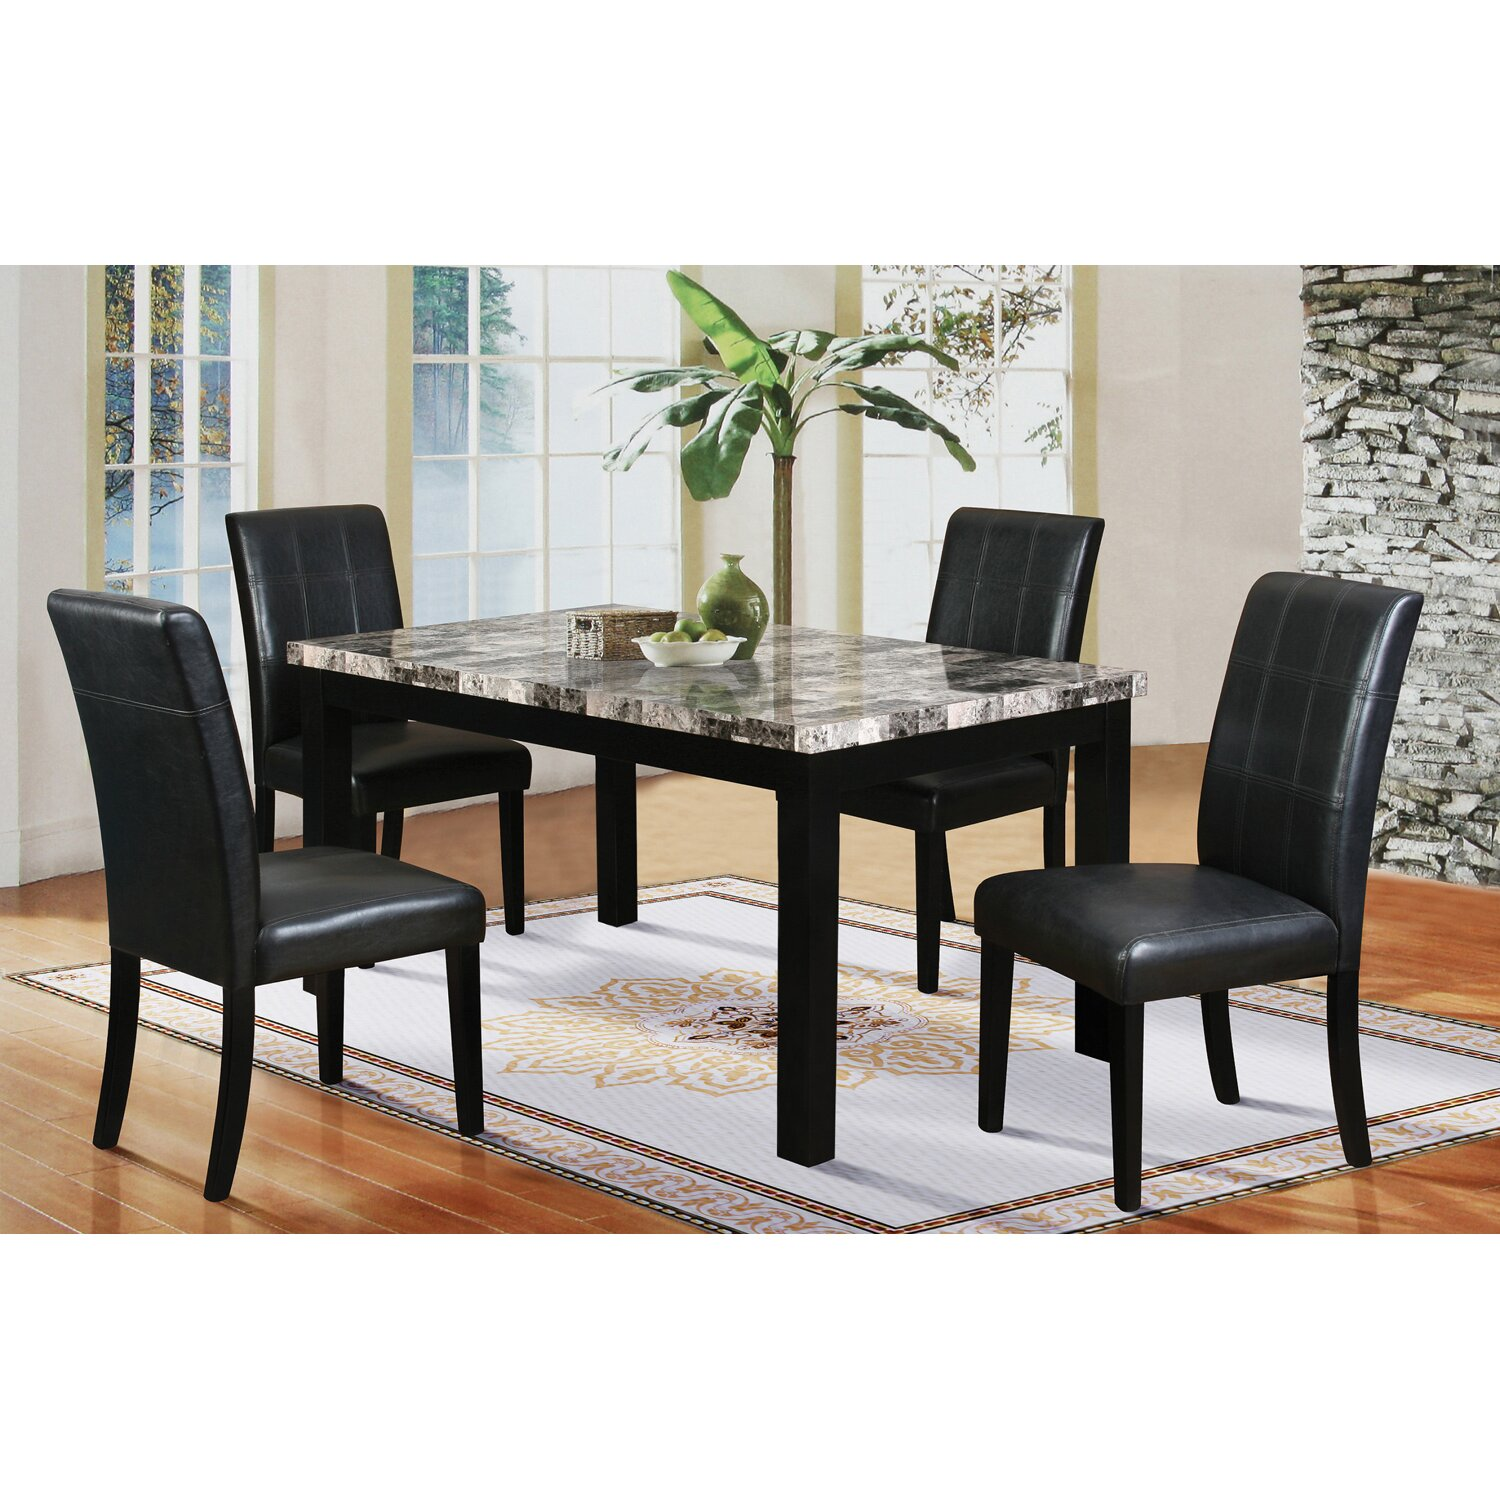 Latitude Run Cahill 5 Piece Dining Set & Reviews  Wayfair. Wall Fold Down Desk. Bed Frames With Drawers. Your Reception Desk. Desk Plaques. Desk Gaming Chair. Dewalt Portable Table Saw. Computer Desk For Multiple Monitors. Modern U Shaped Desk